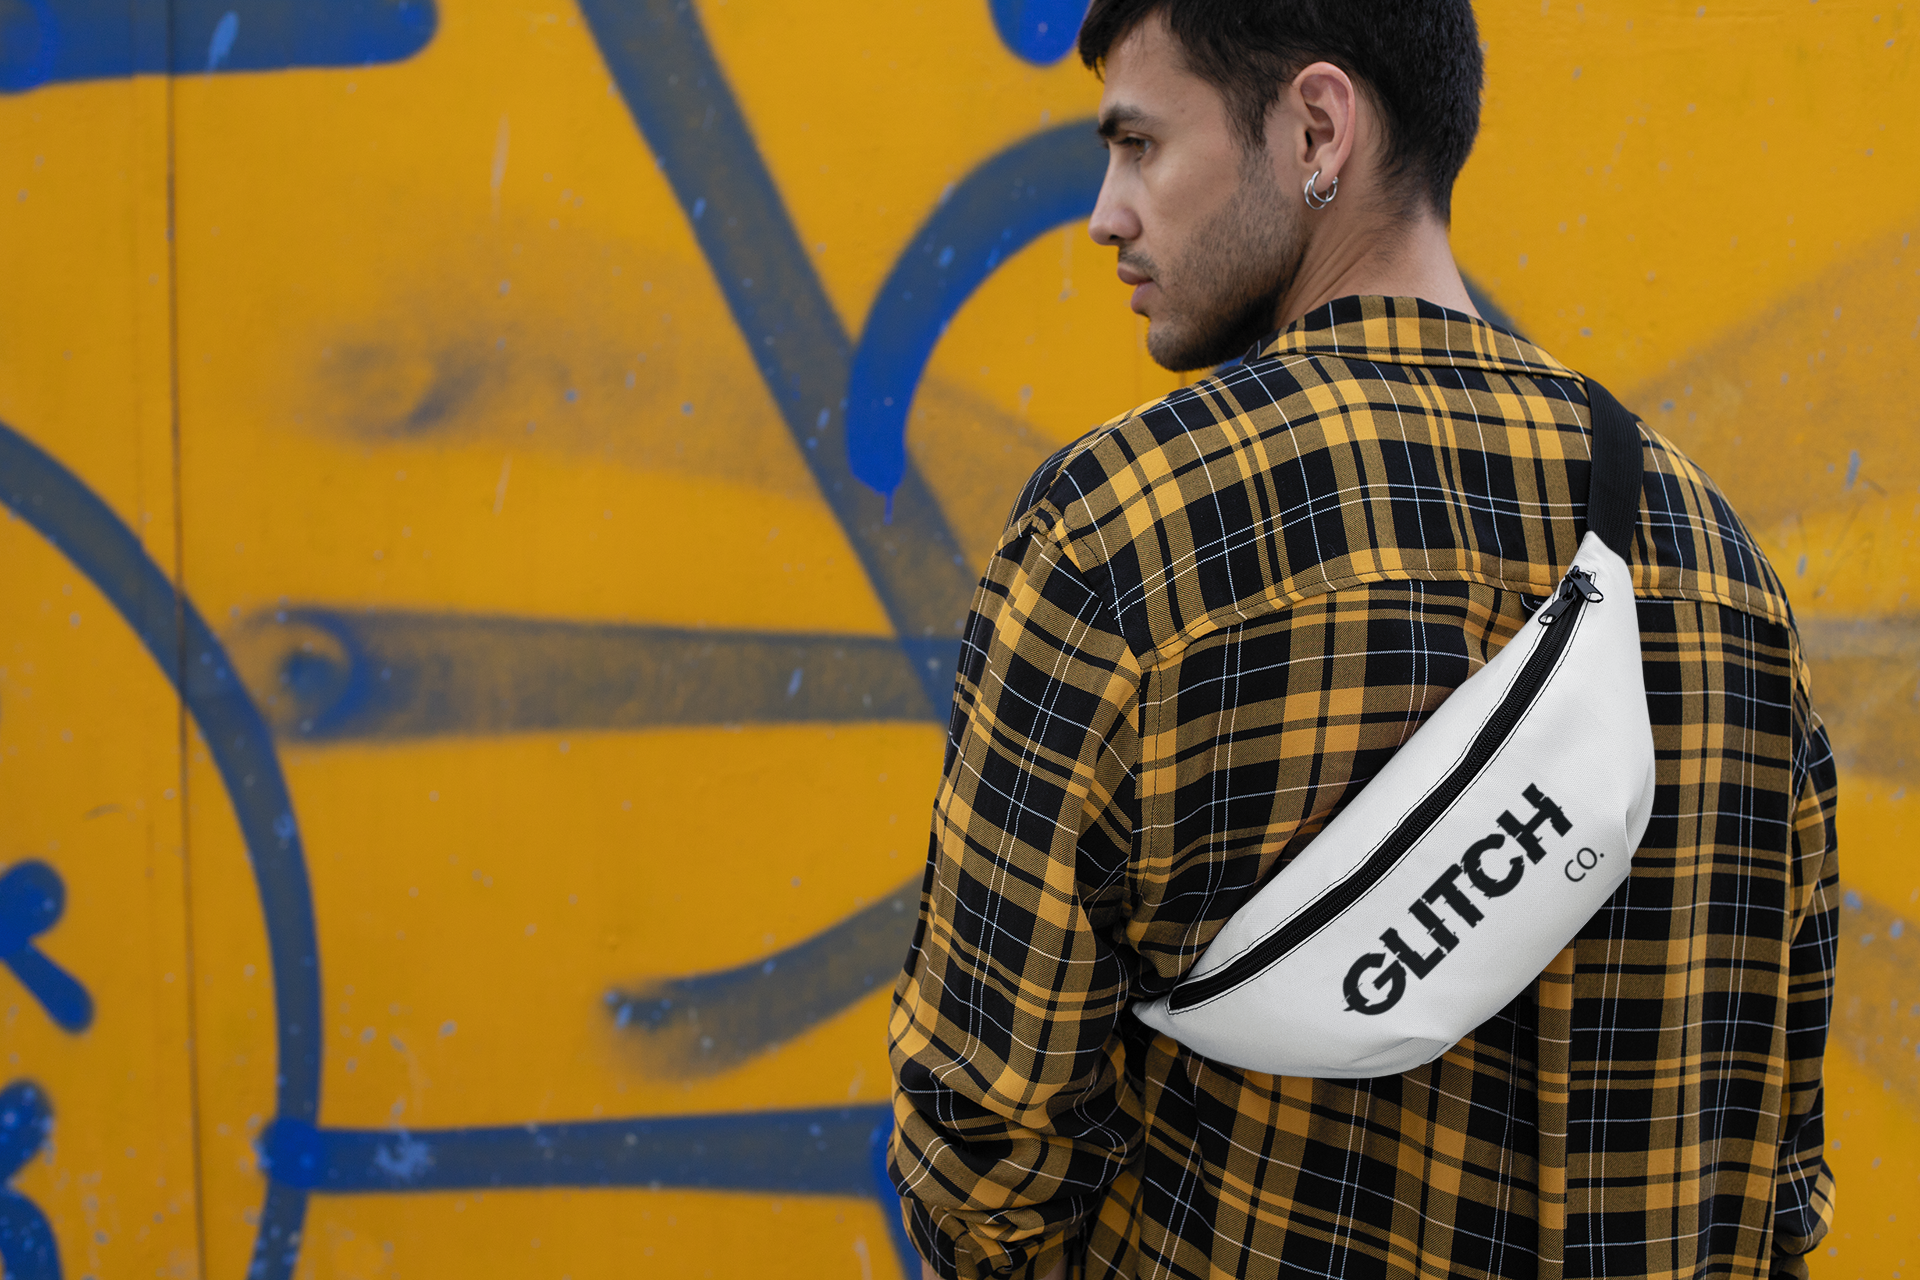 Glitch co. White bum bag